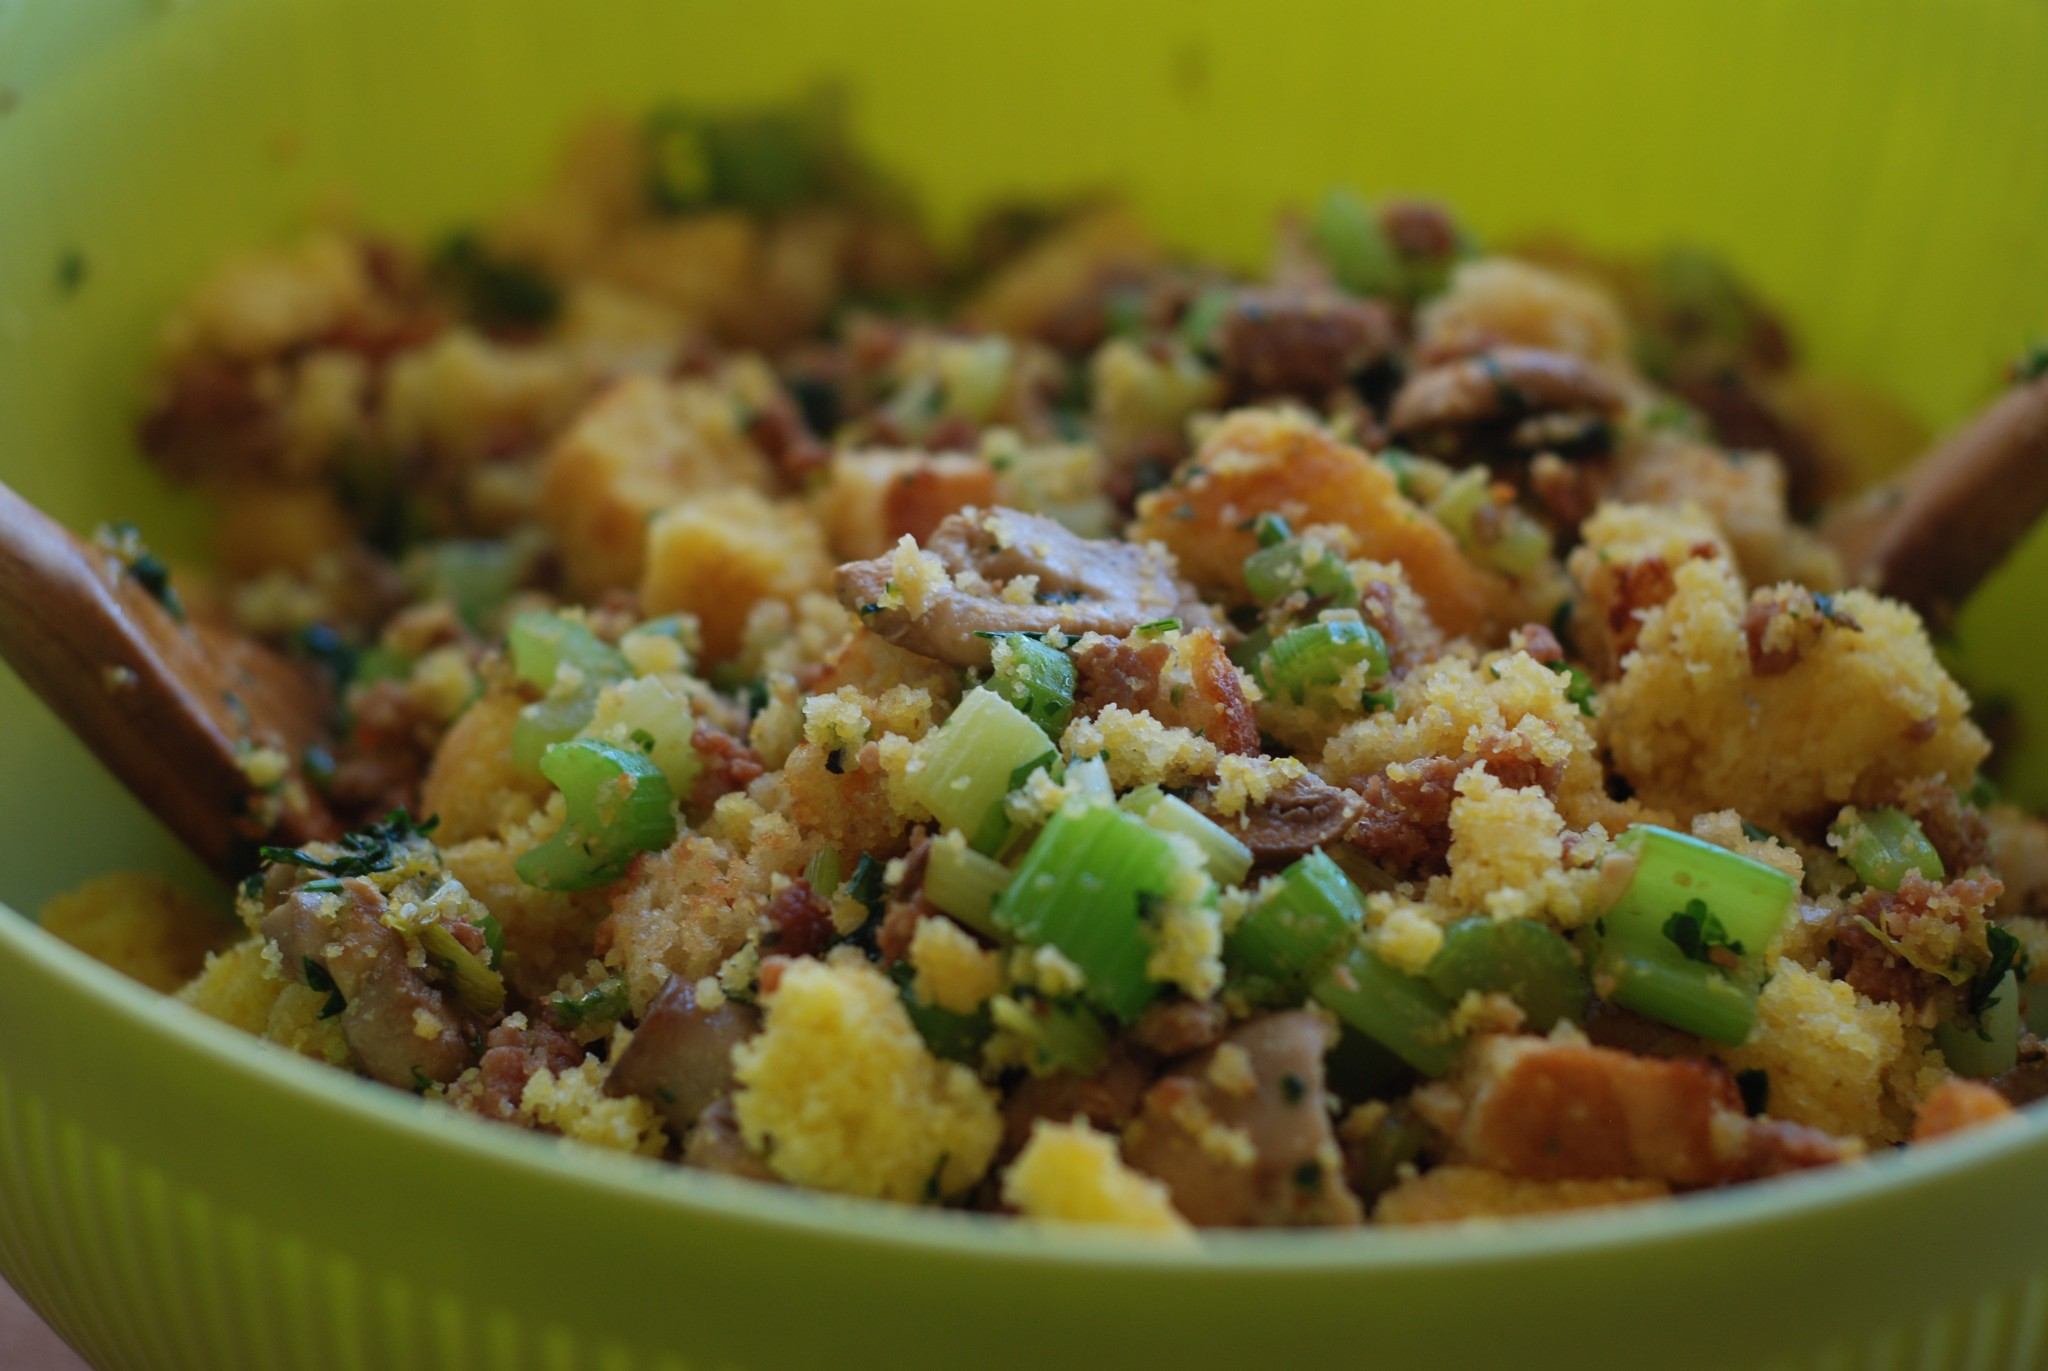 All those yummy bits of mushroom, celery, sausage, and cornbread ready to put in the turkey - so good!